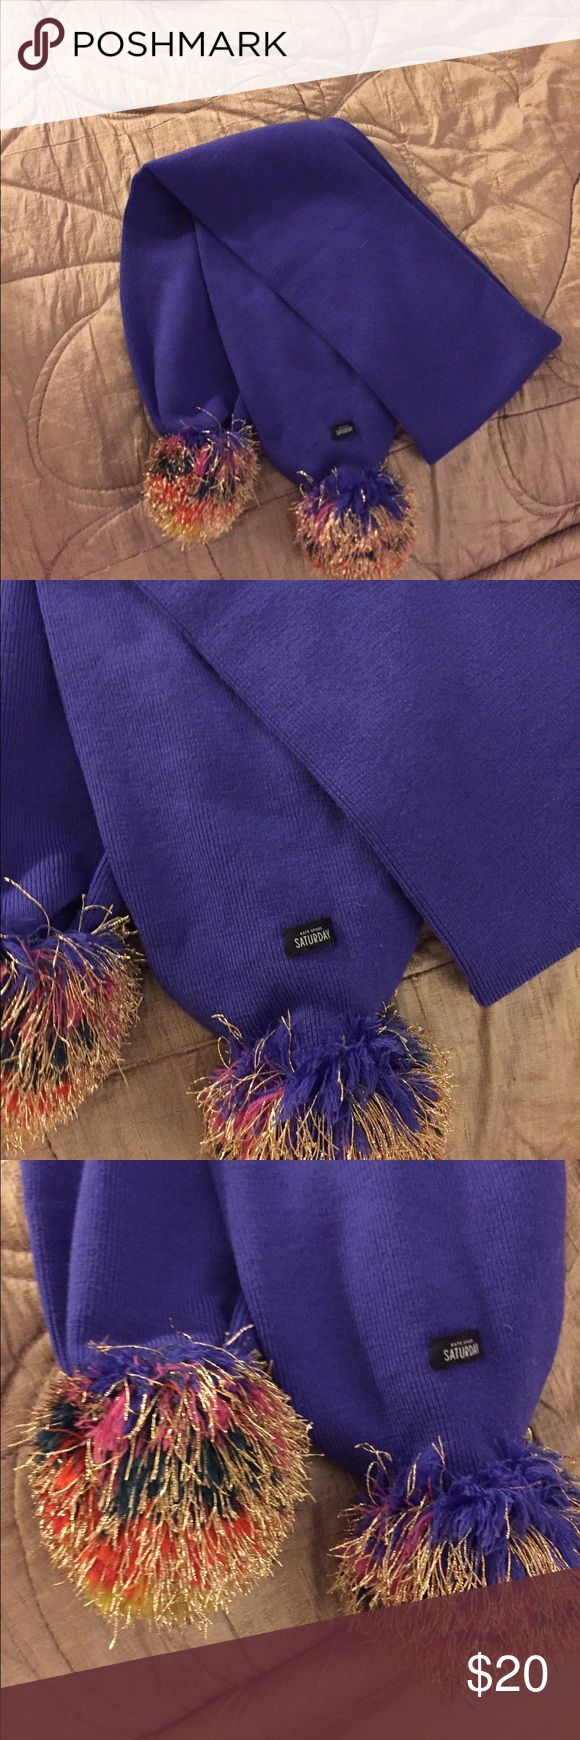 Katr spade Saturday scarf Never worn no tags purple with multicolored pompom kate spade Accessories Scarves & Wraps